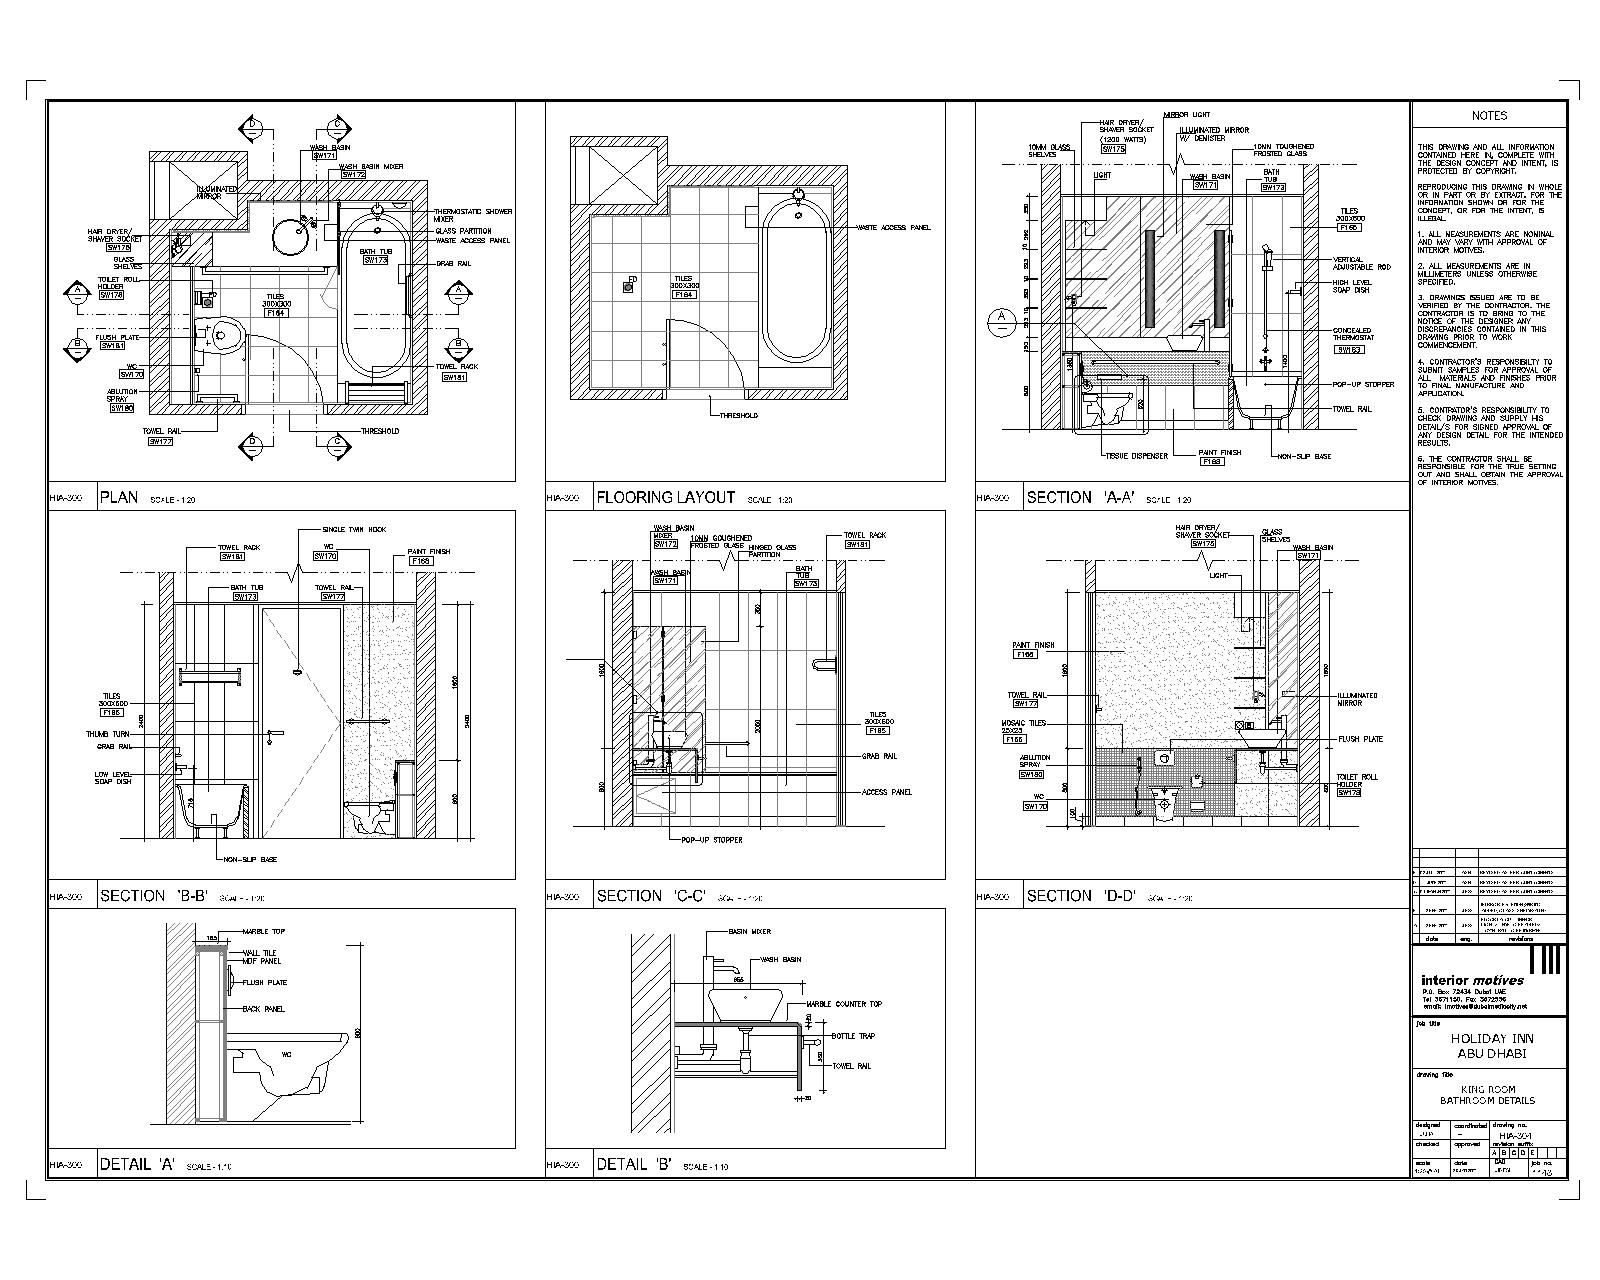 Autocad drawings detail by ashik ahammed at coroflot for Online cad drawing